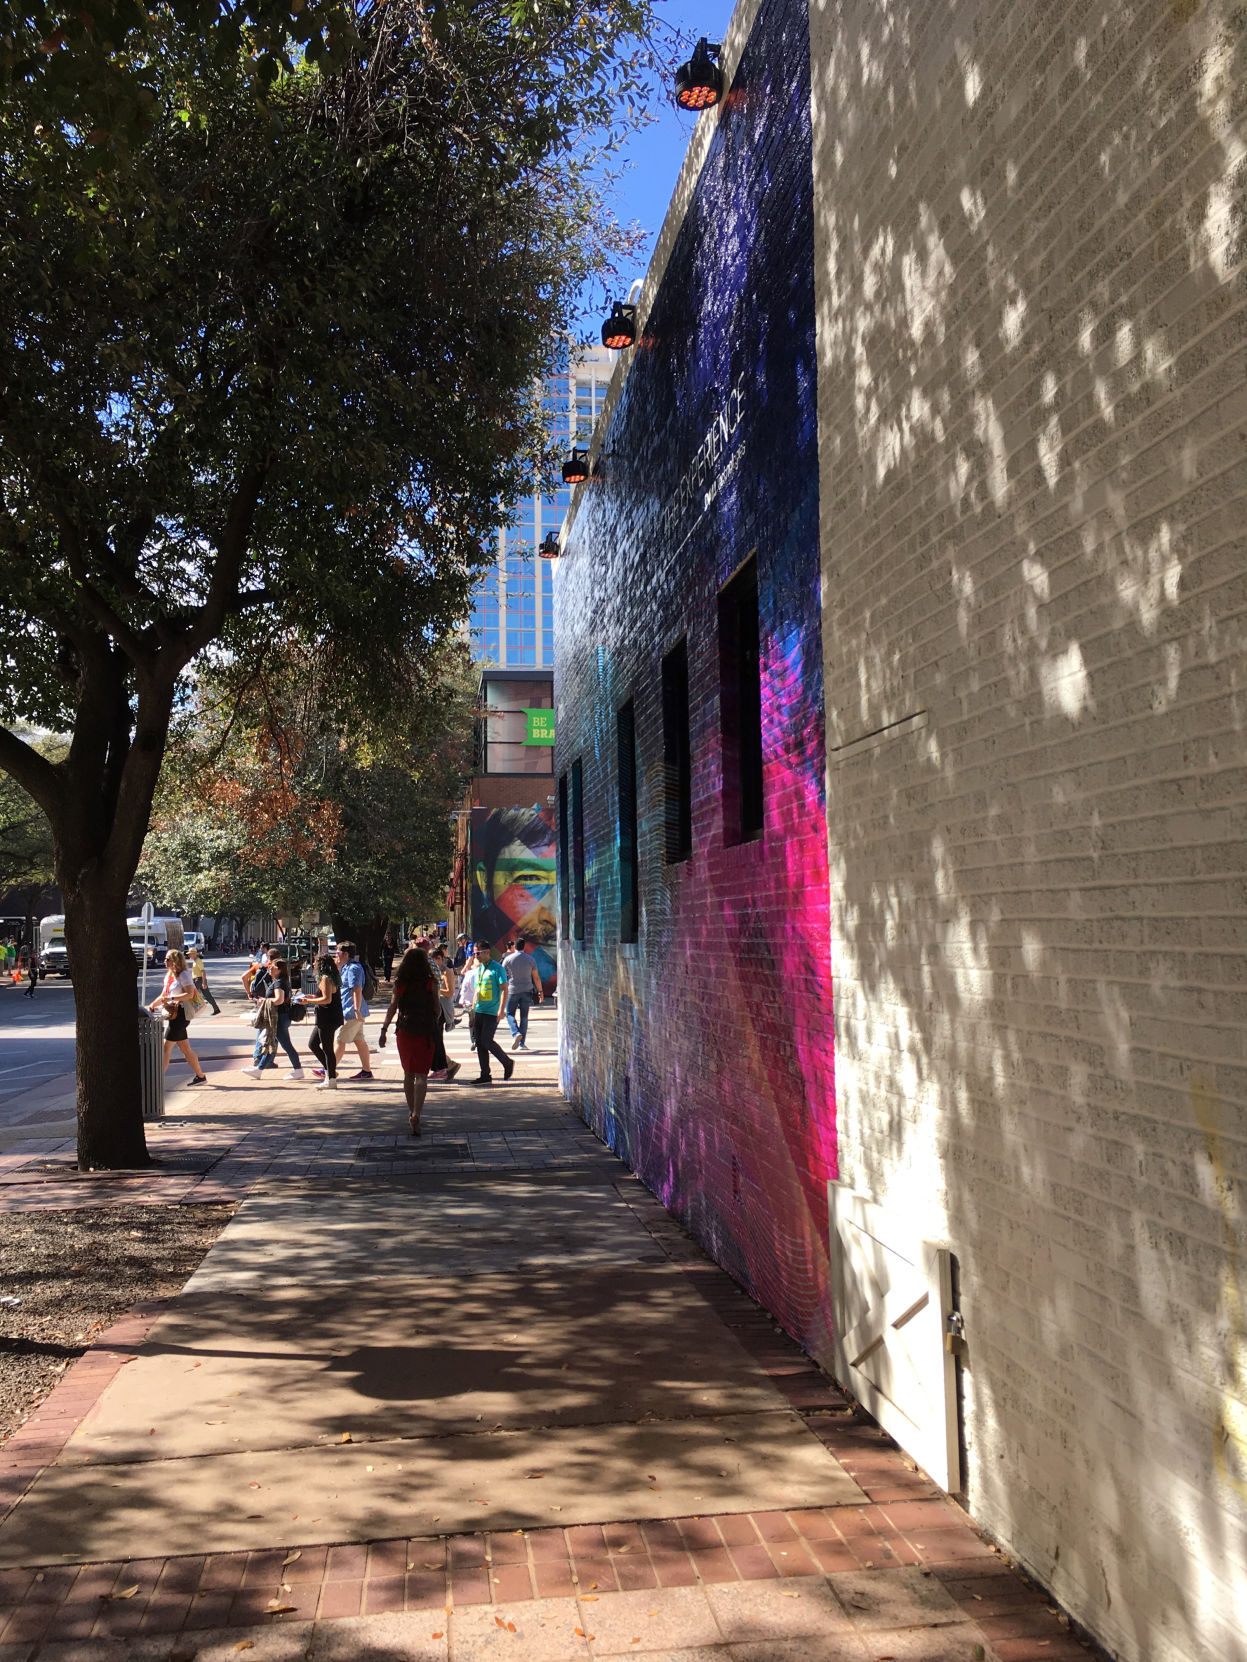 Lessons from Austin: Observing, interacting, and finding purpose